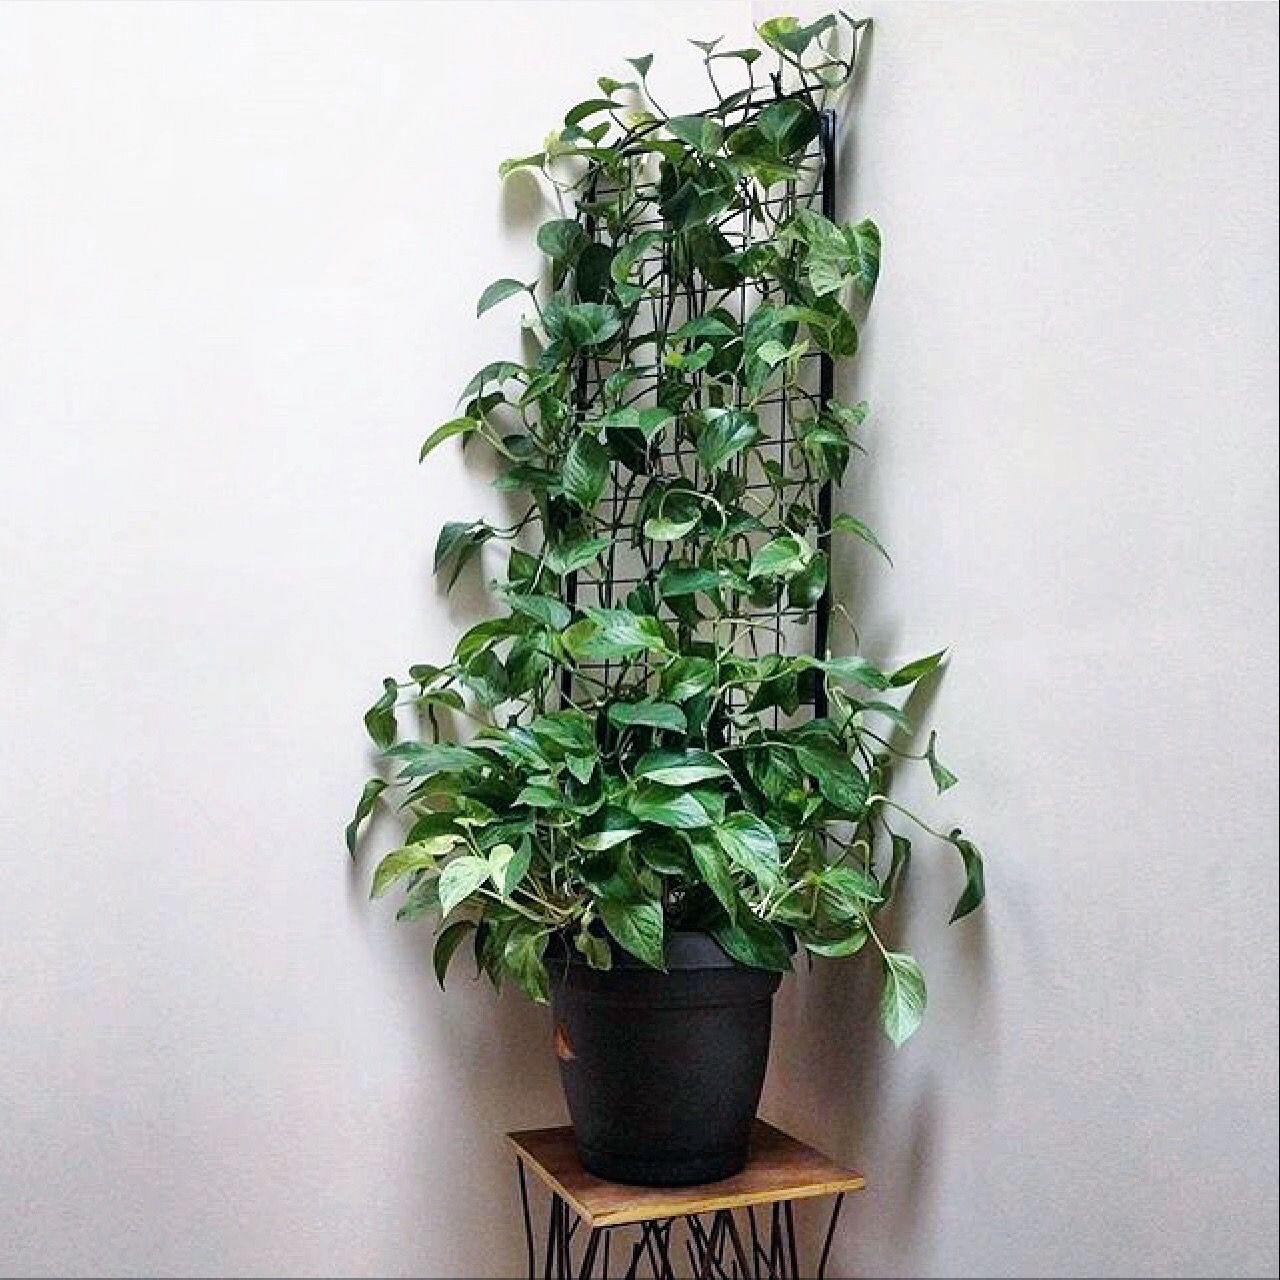 Another Great Project Update Darryl From The House Plant Journal Blog Houseplantjournal Com Posted This Photo Today Of T House Plants Plants Planter Trellis